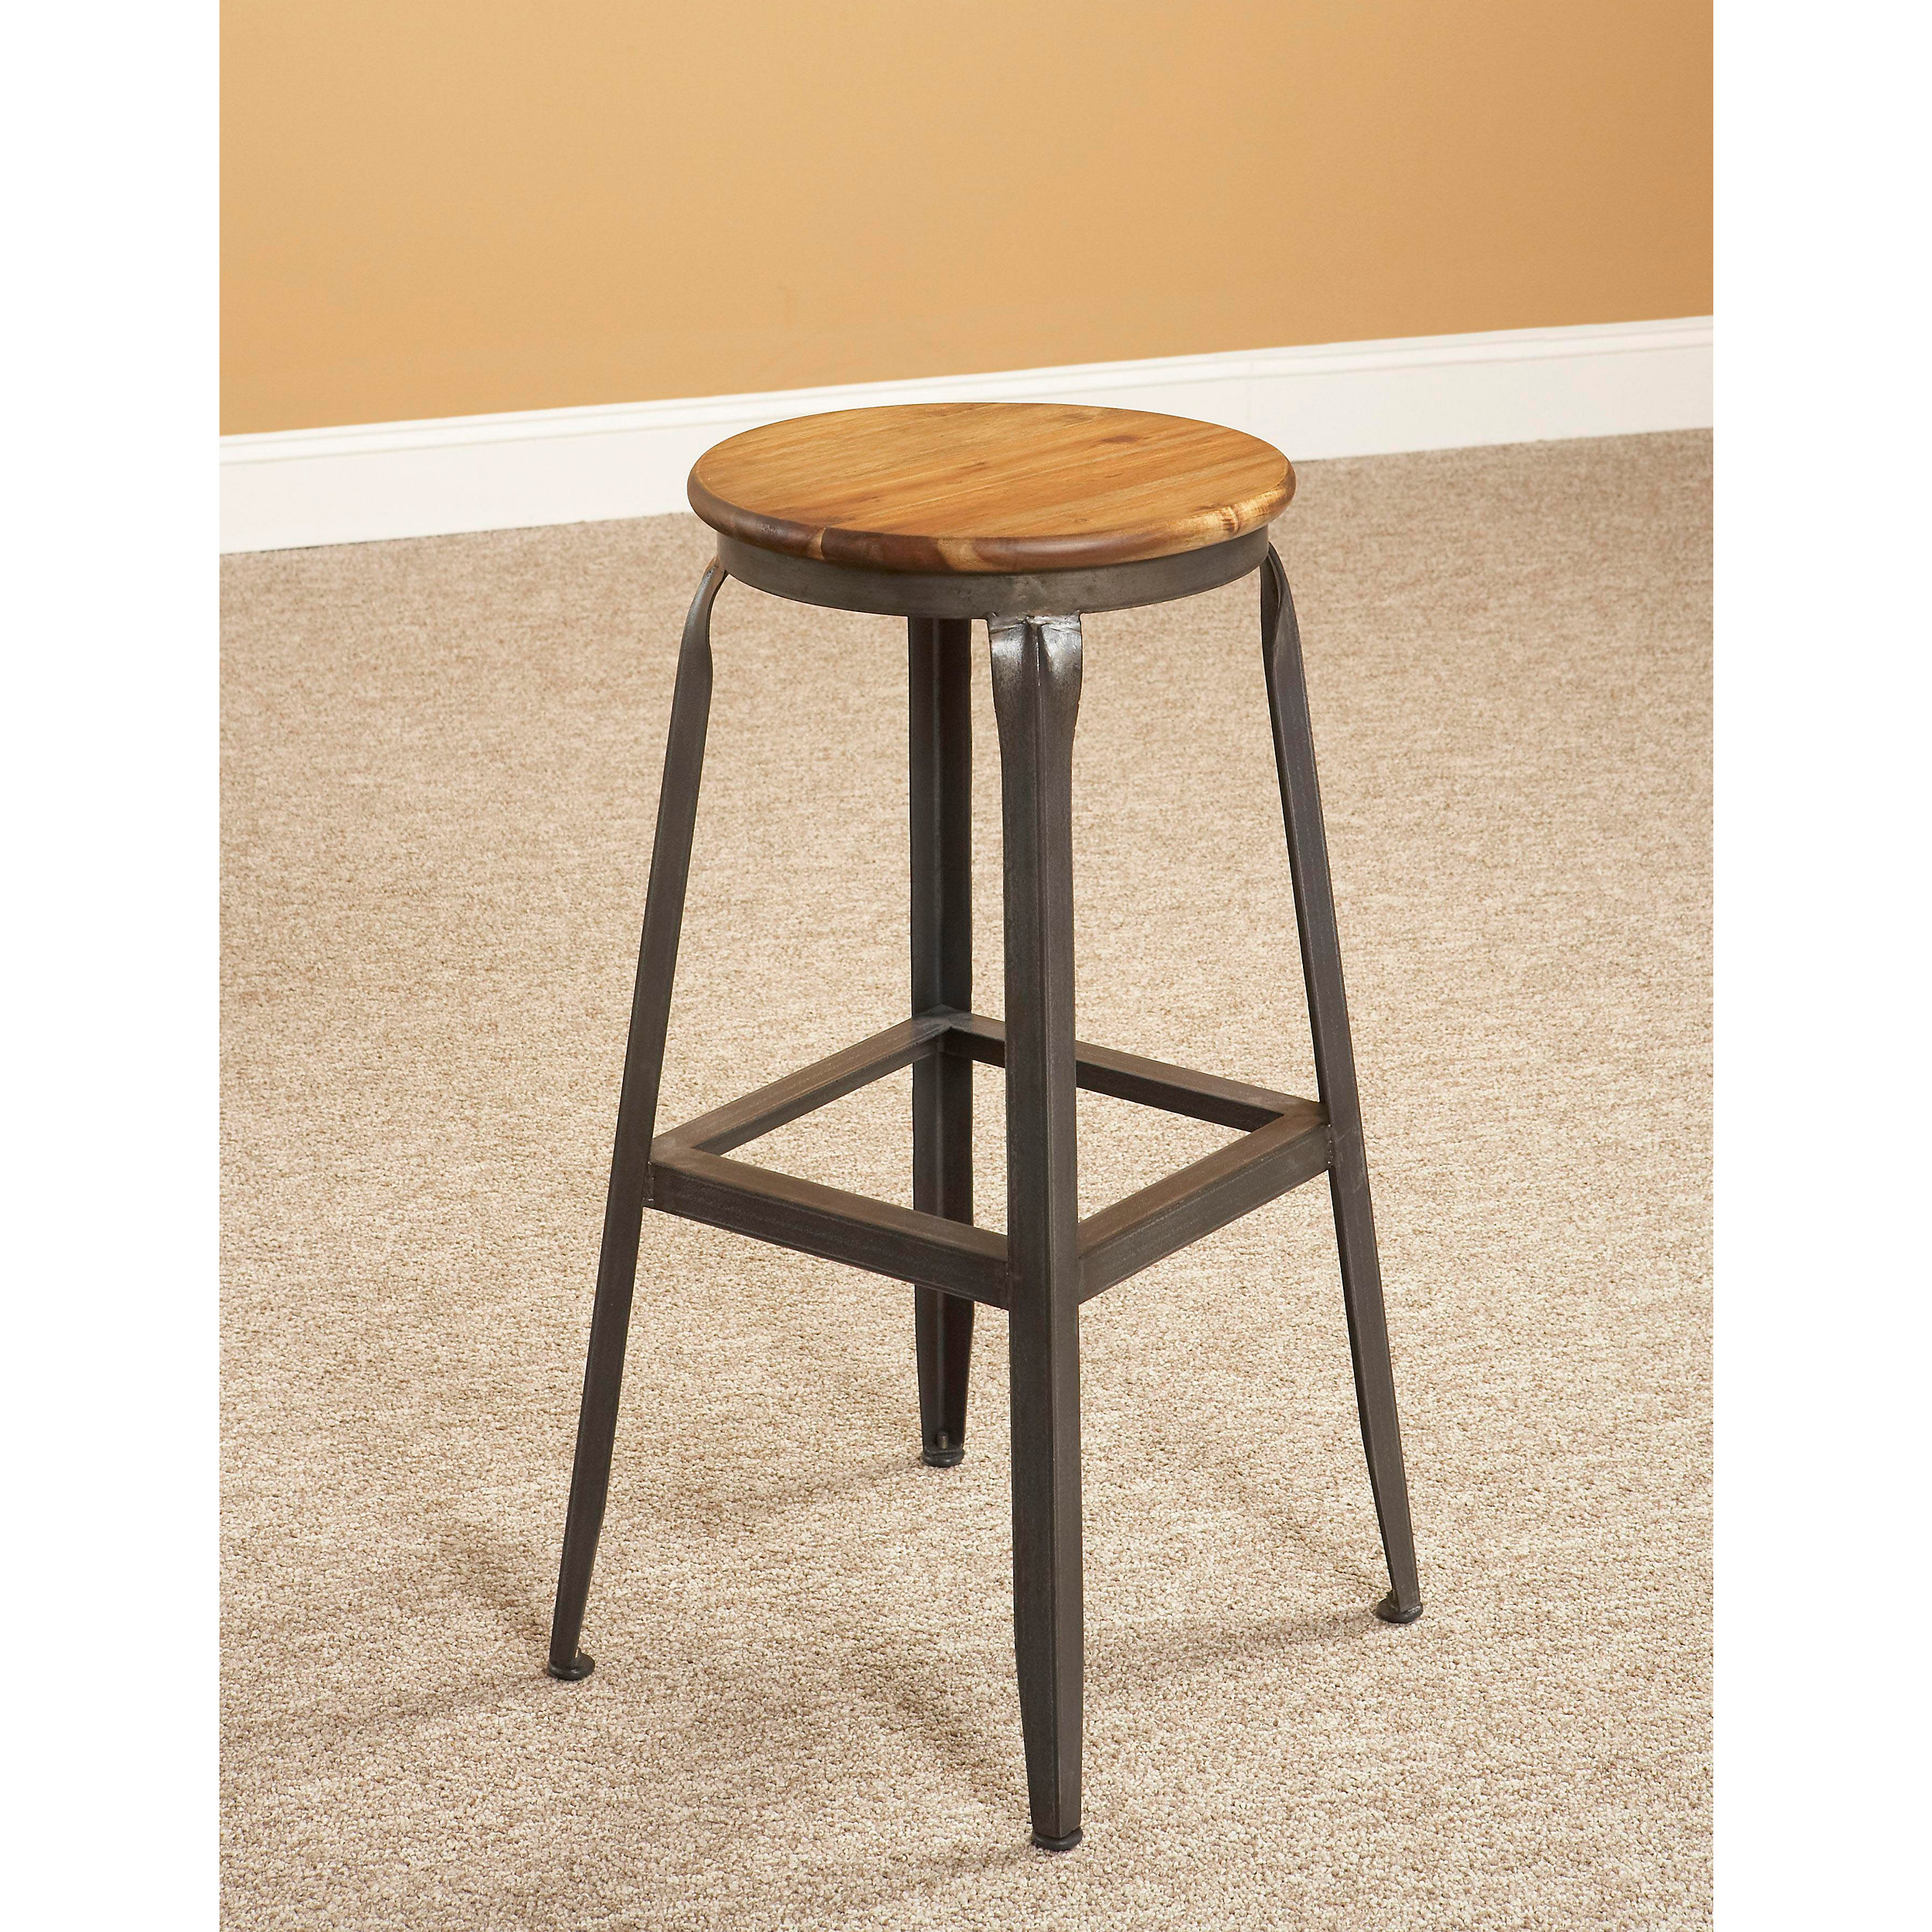 Wood and iron bar stools wood and metal bar stools